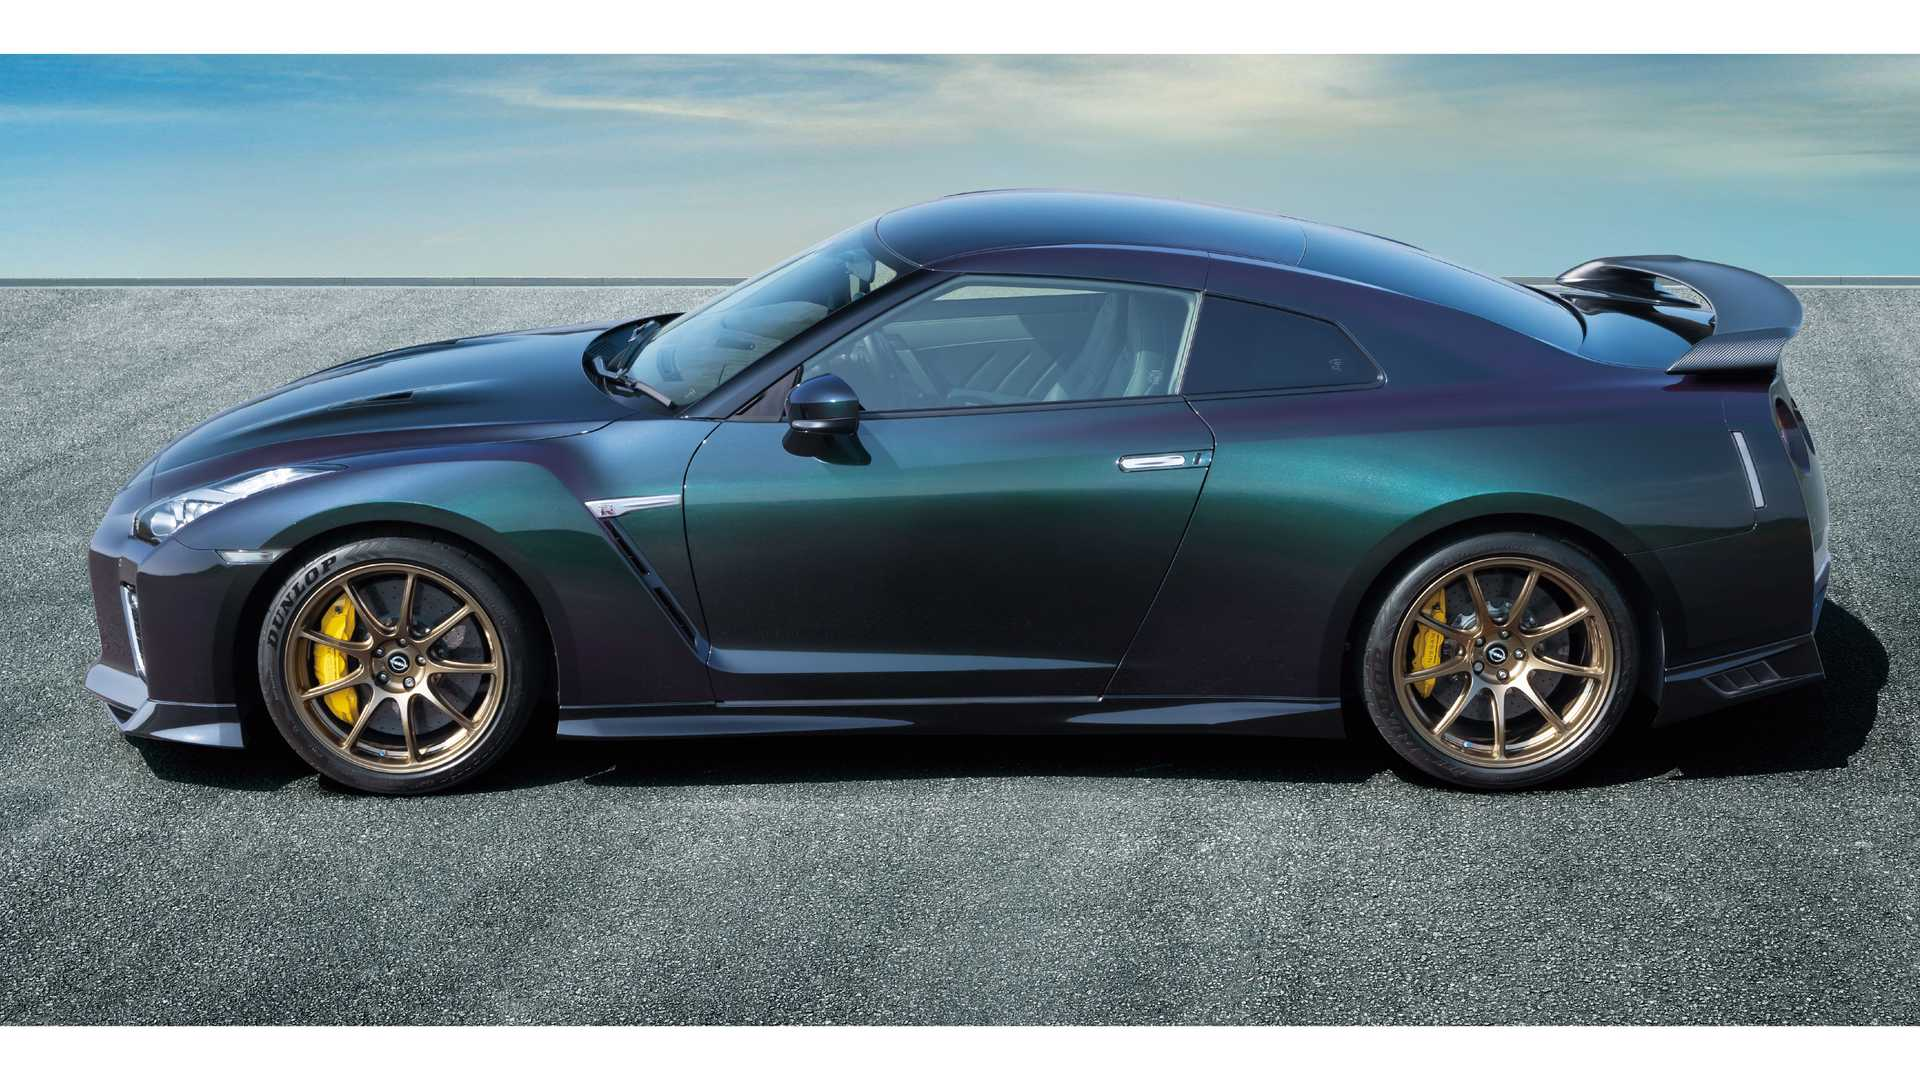 Nissan has launched a special edition of the GT-R in Japan and the United States. Dubbed the T-spec, it clearly targets the clientele familiar with the marque's history.